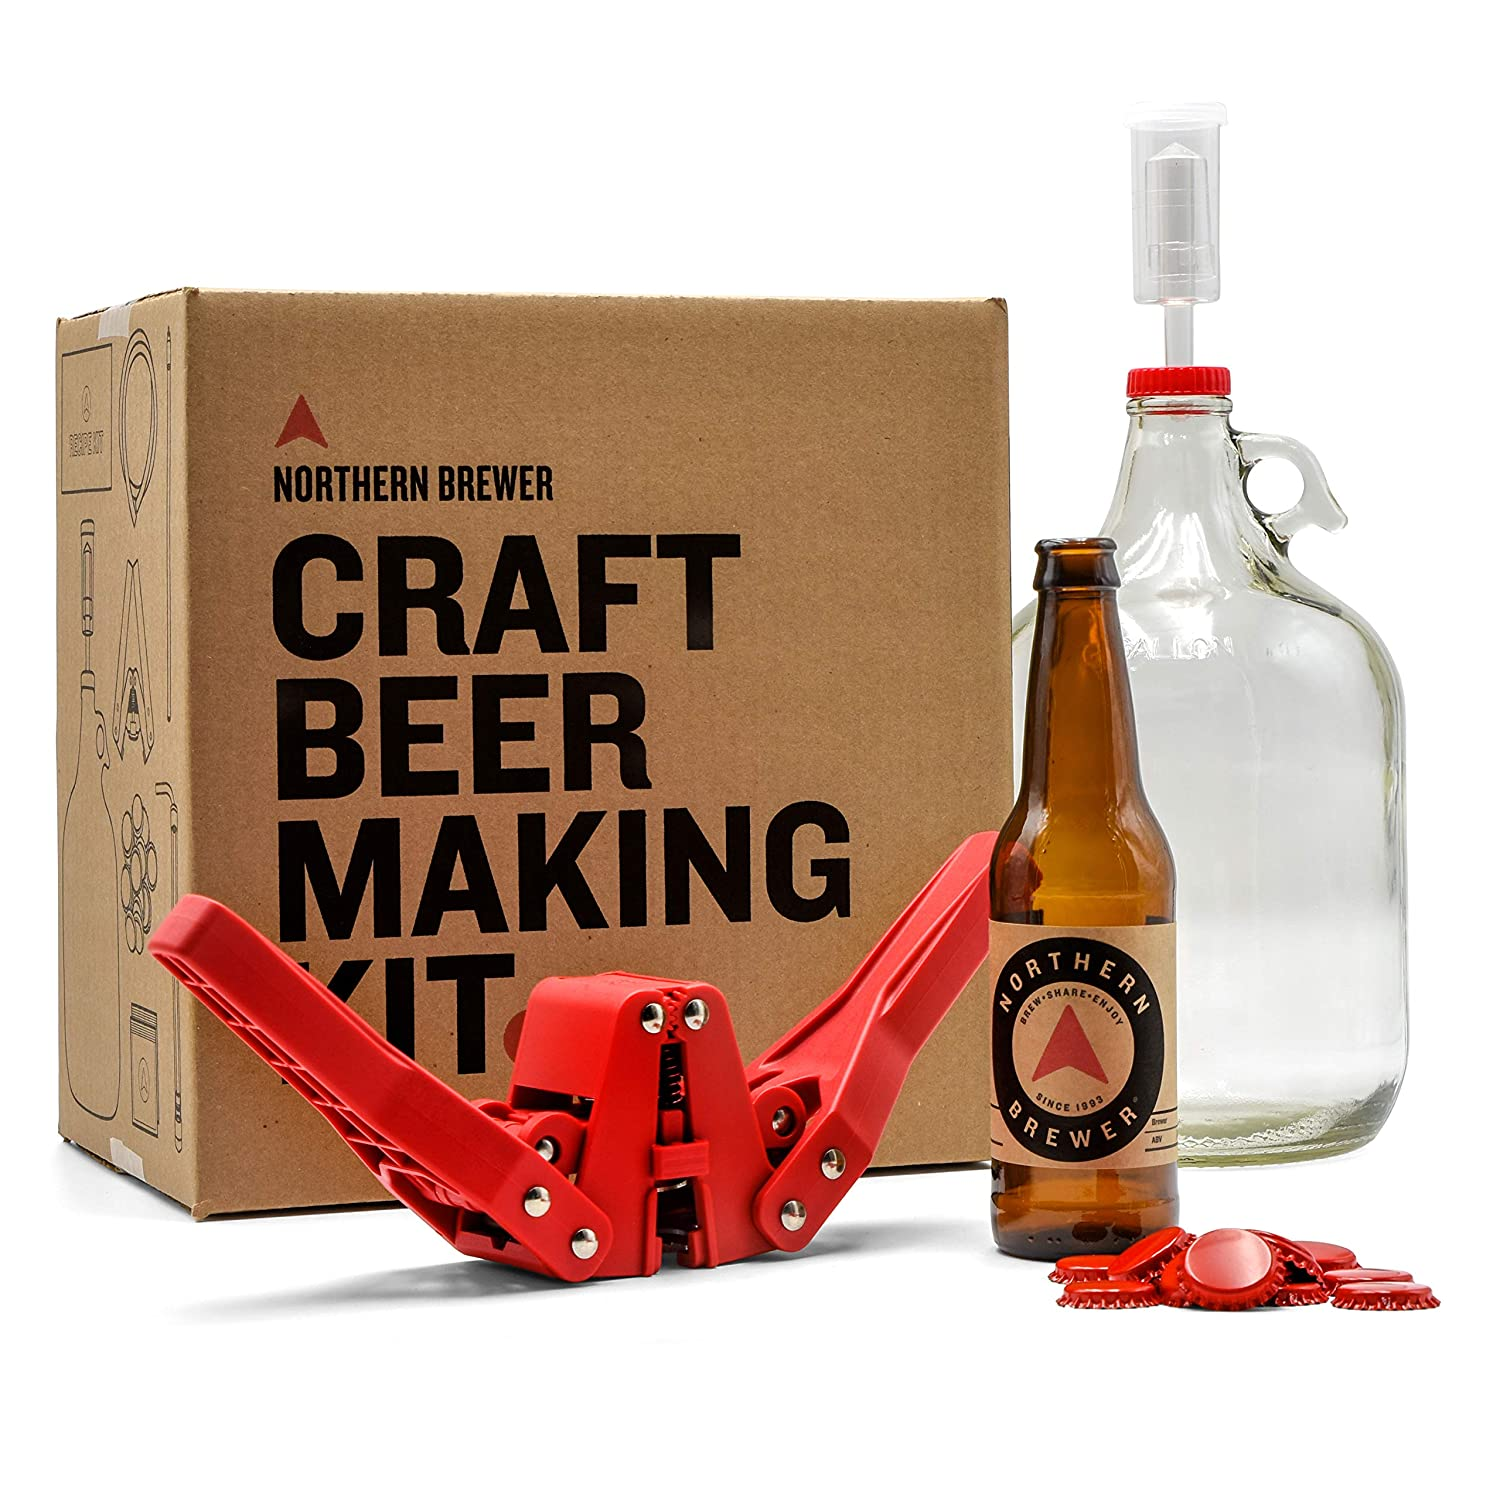 20c3d7da Northern Brewer Small Batch Homebrew Starter Kit with American Brown Ale  Recipe Kit: Amazon.co.uk: Kitchen & Home